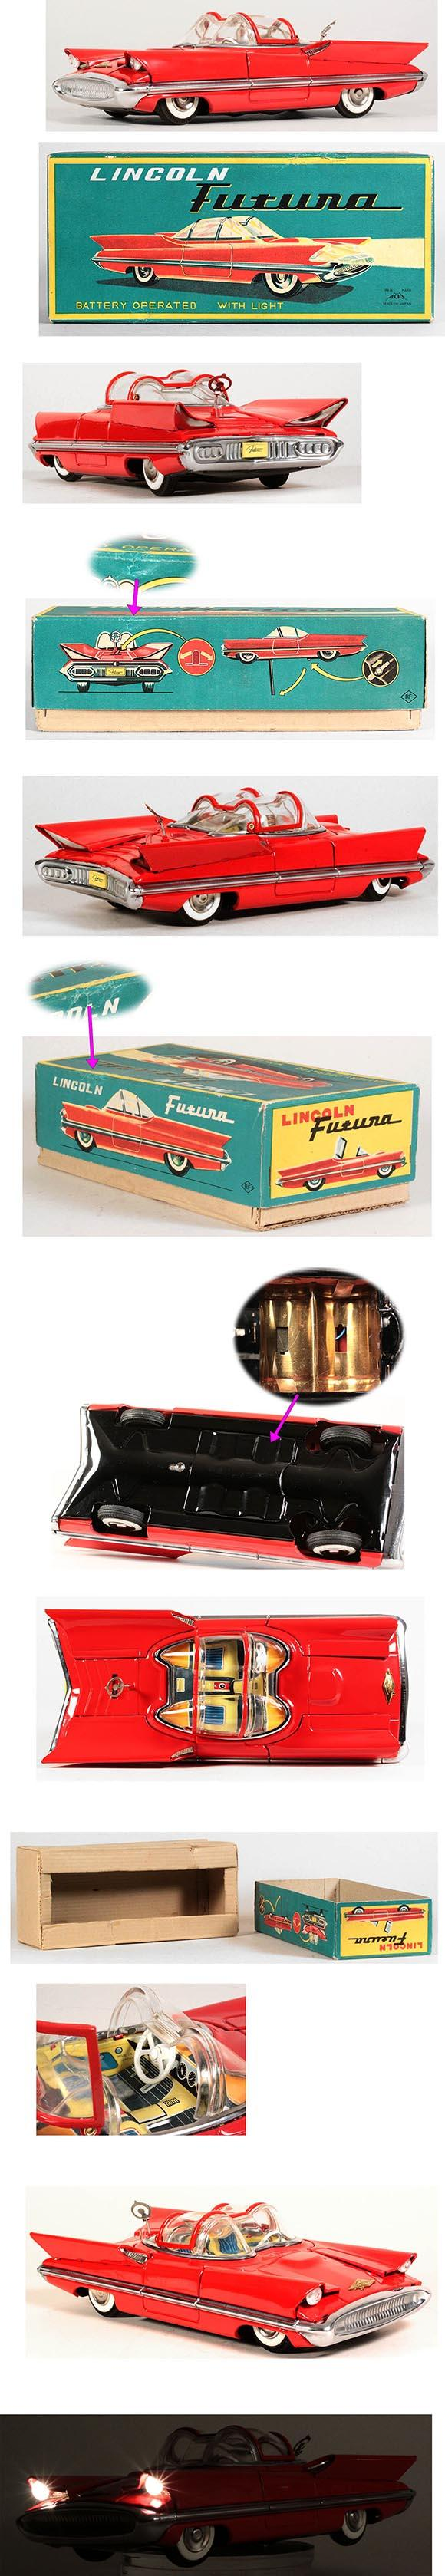 1955 Alps, Battery Operated